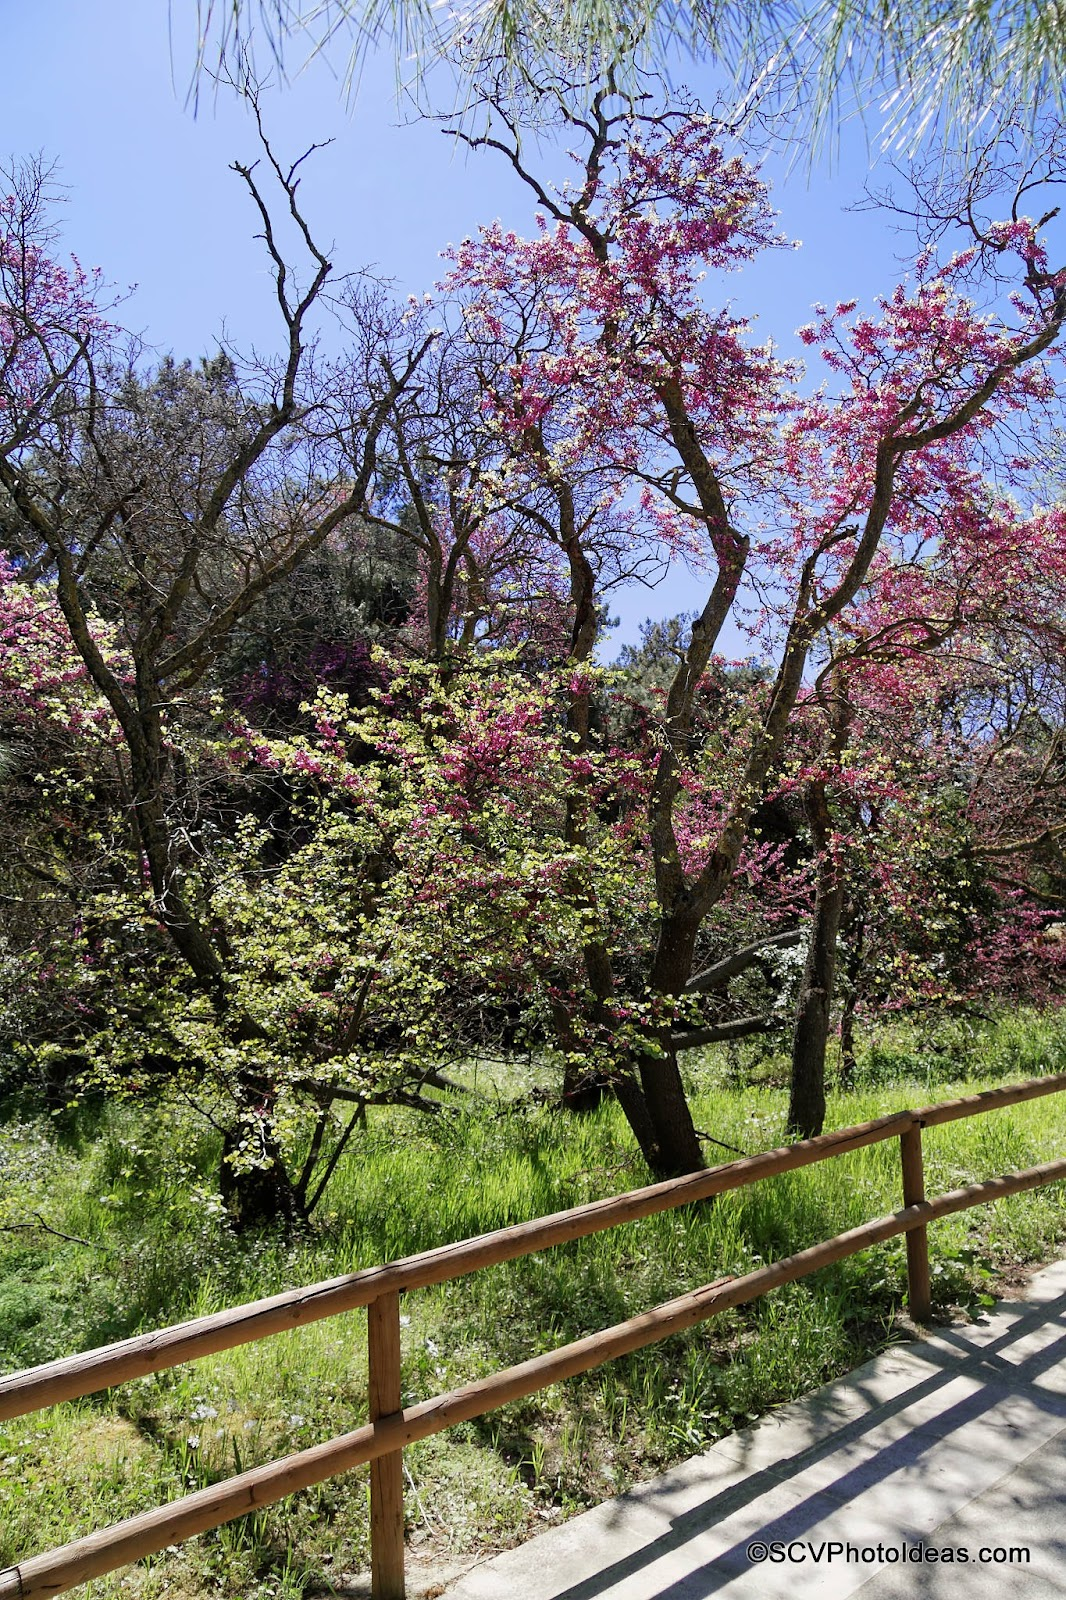 Blossoming Almond Tree on the road side